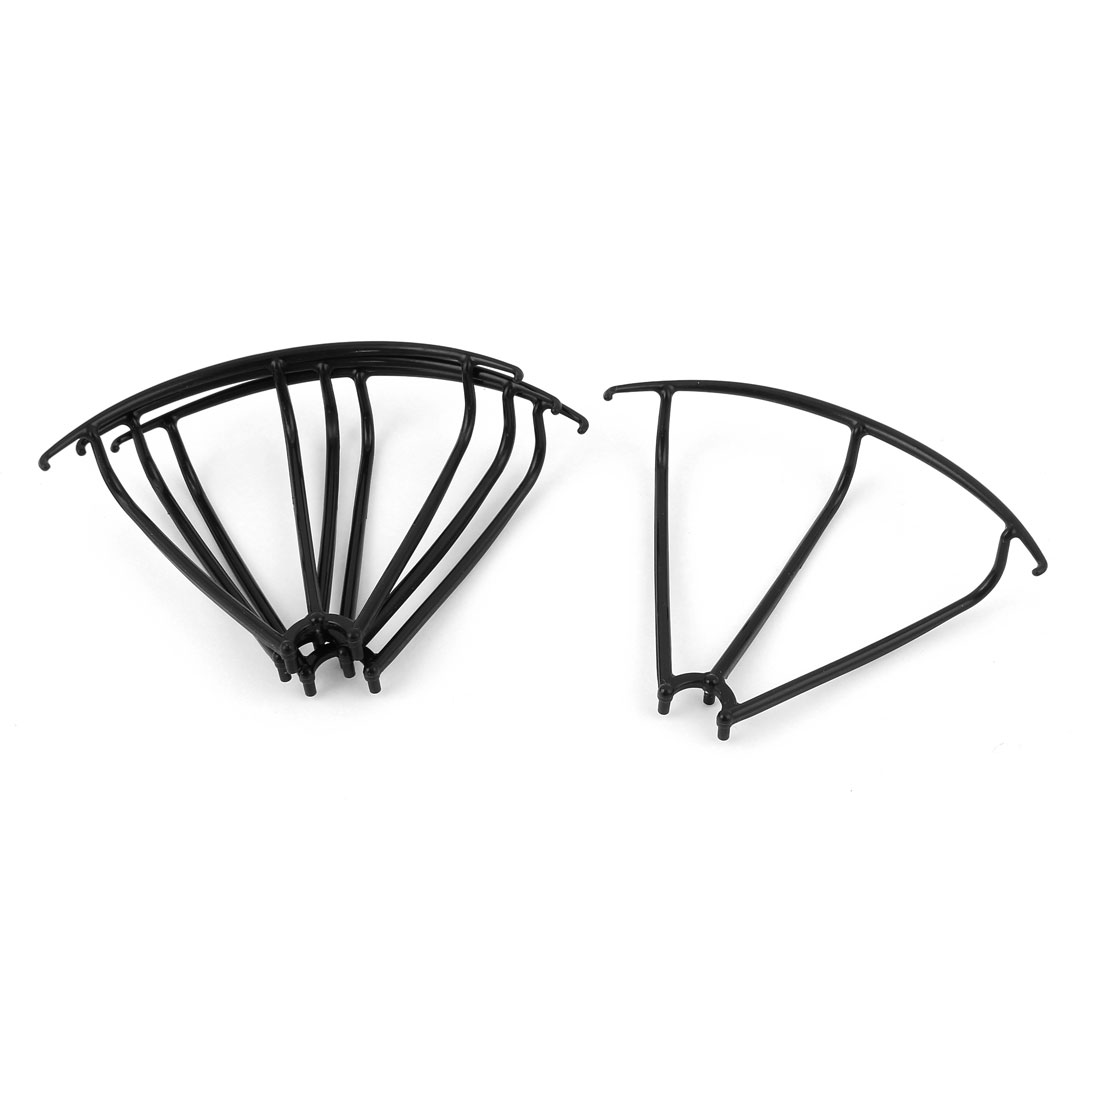 Set Spare Parts Guard Protection Cover Frame Black for MJX X400 RC Quadcopter